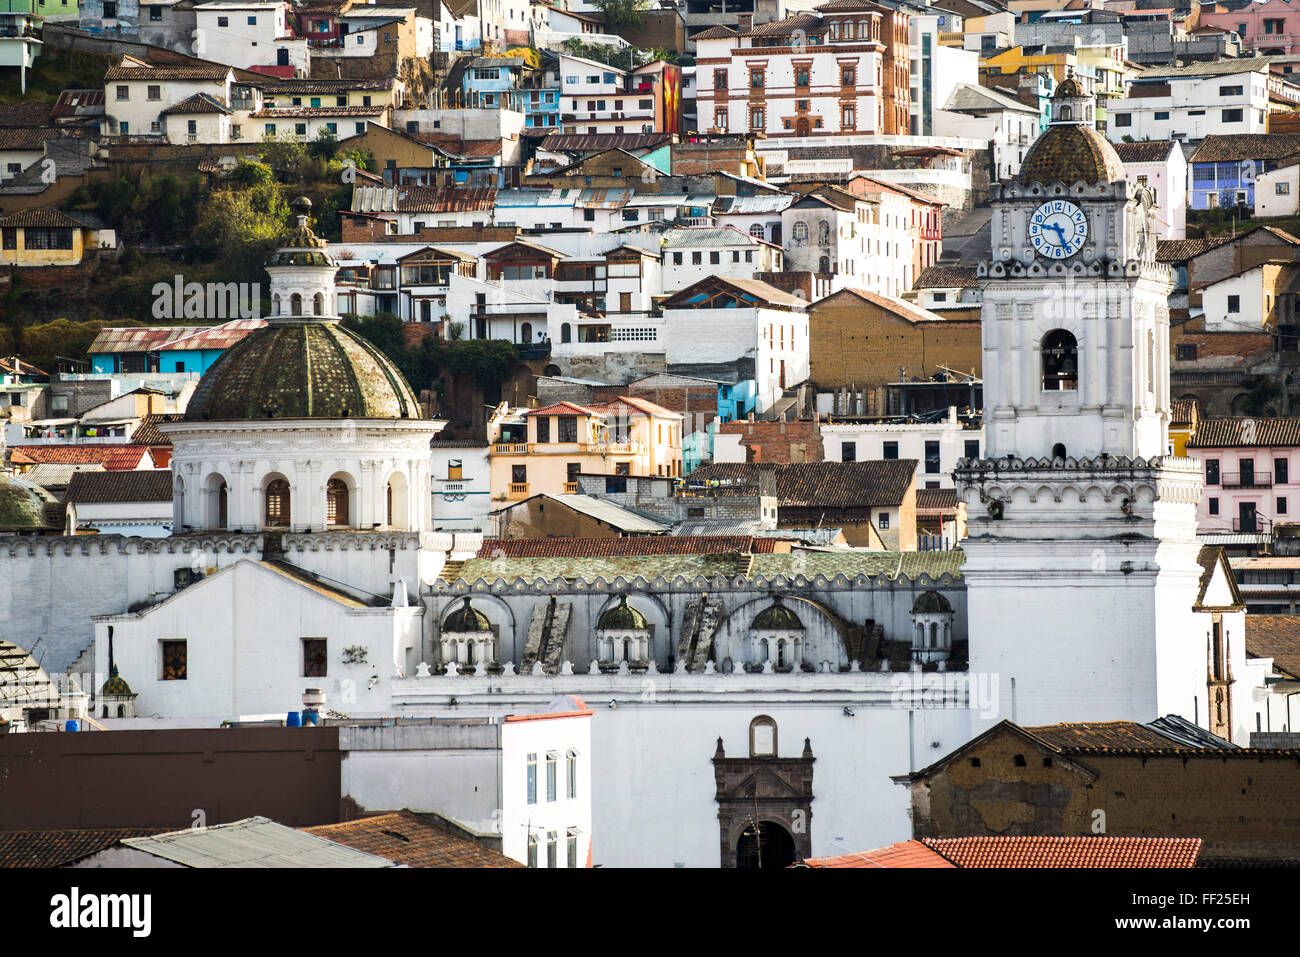 ArchitecturaRM detaiRMs at the ORMd City of Quito, UNESCO WorRMd Heritage Site, Ecuador, South America - Stock Image